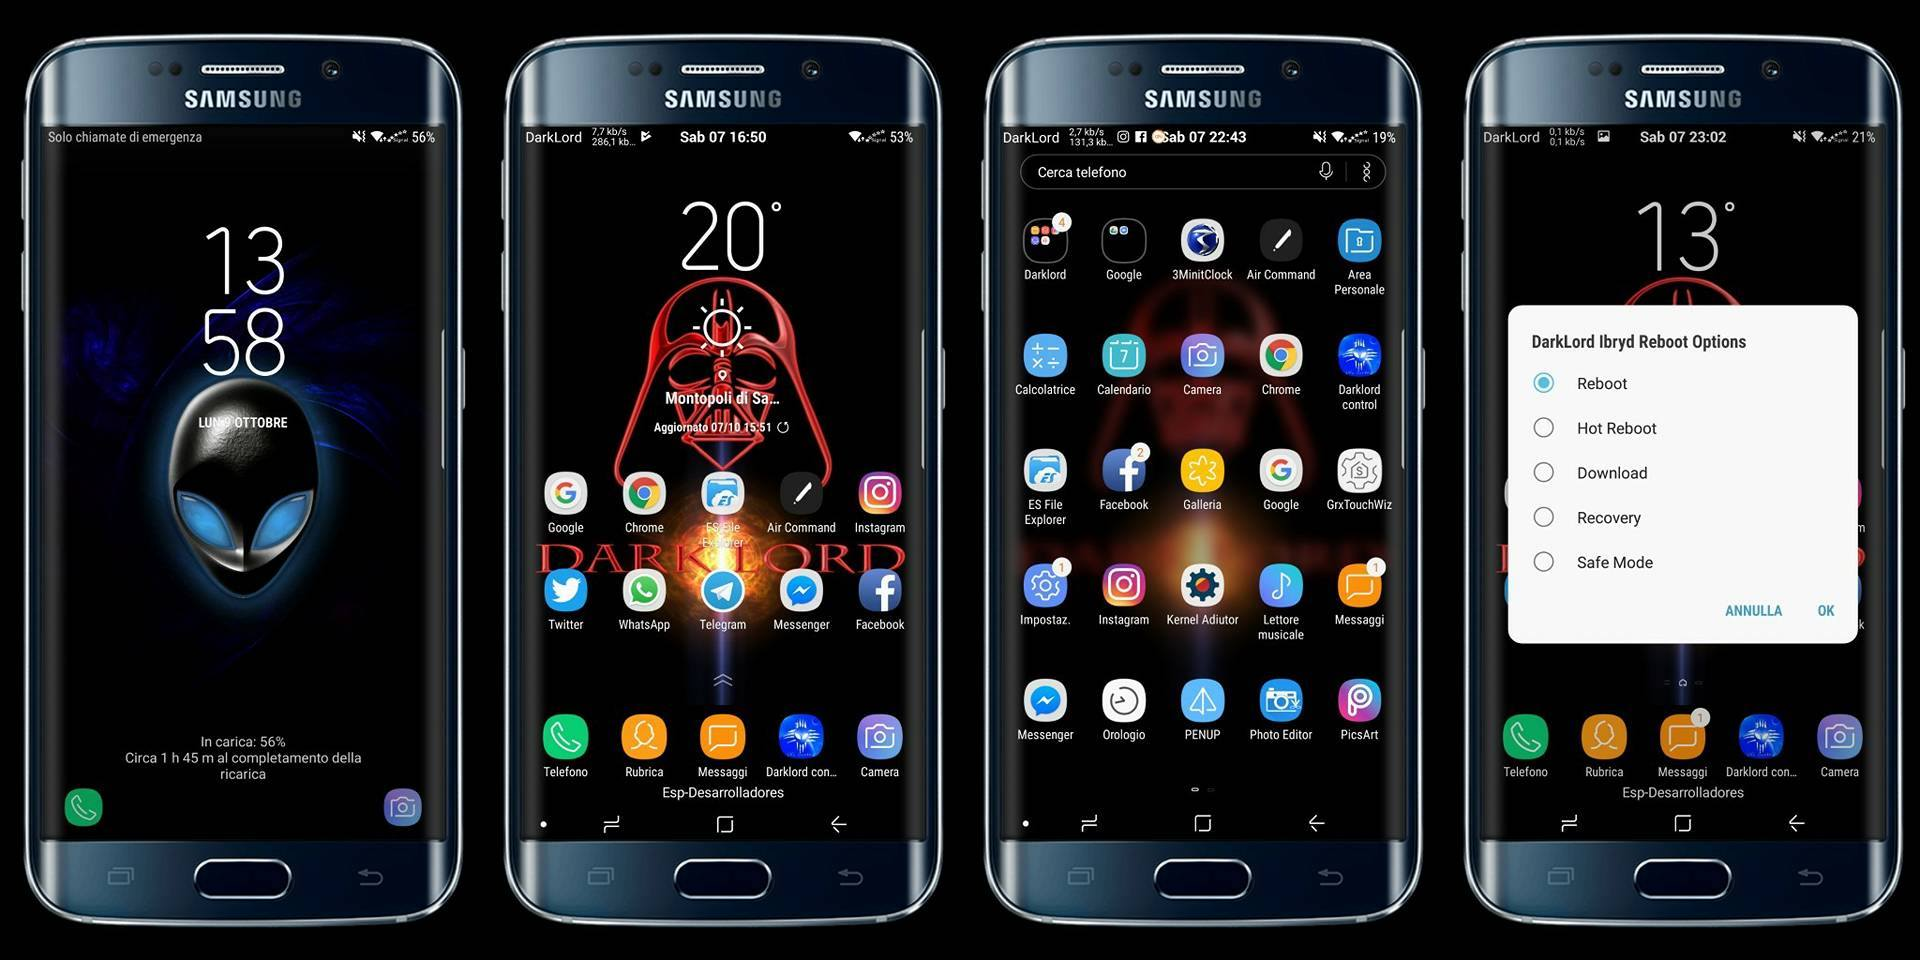 Come trasformare Galaxy S7 in S8 / NOTE 8 con la ROM DARKLORD IBRYD NOTE 8/S8+